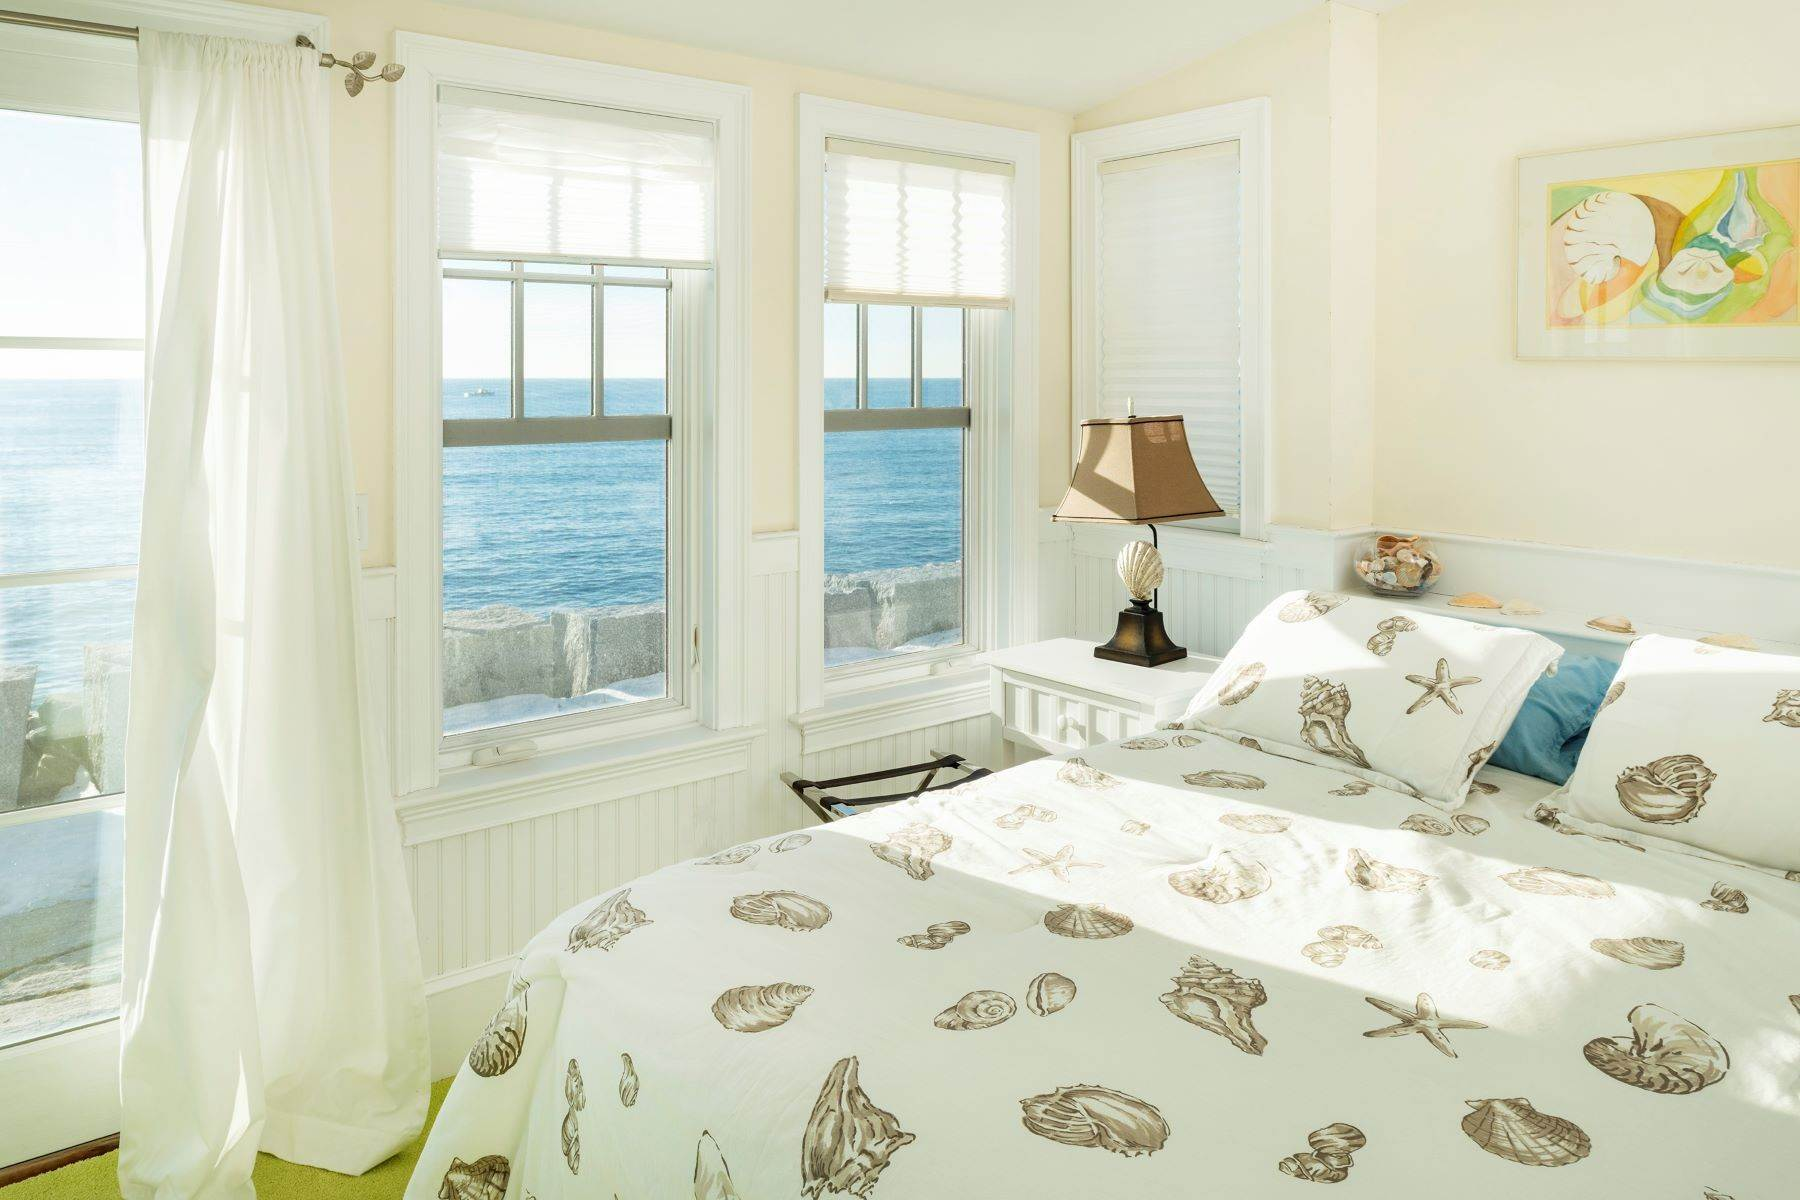 20. Other Residential Homes at 24 McKenney Point Road, Cape Elizabeth Cape Elizabeth, ME 04107